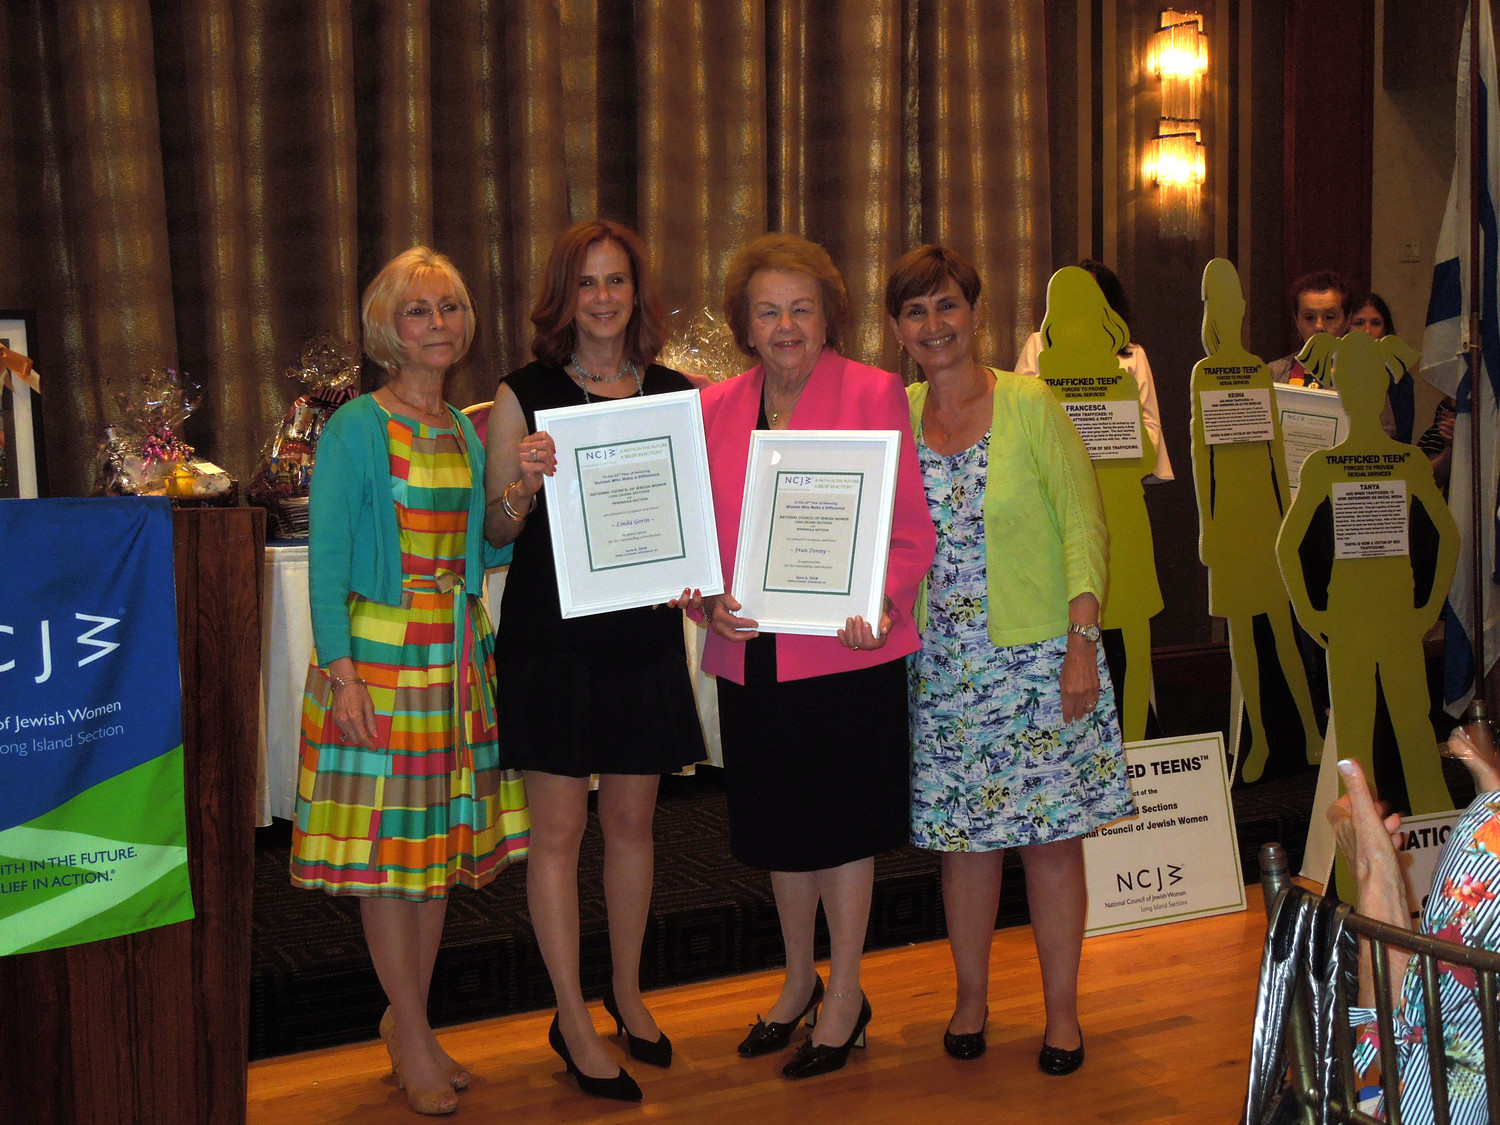 The National Council of Jewish Women-Long Island sections noted the volunteer work of six women at its annual luncheon. From left CeCe Friedman, Linda Gorin, Fran Denny and Jackie Fetner.